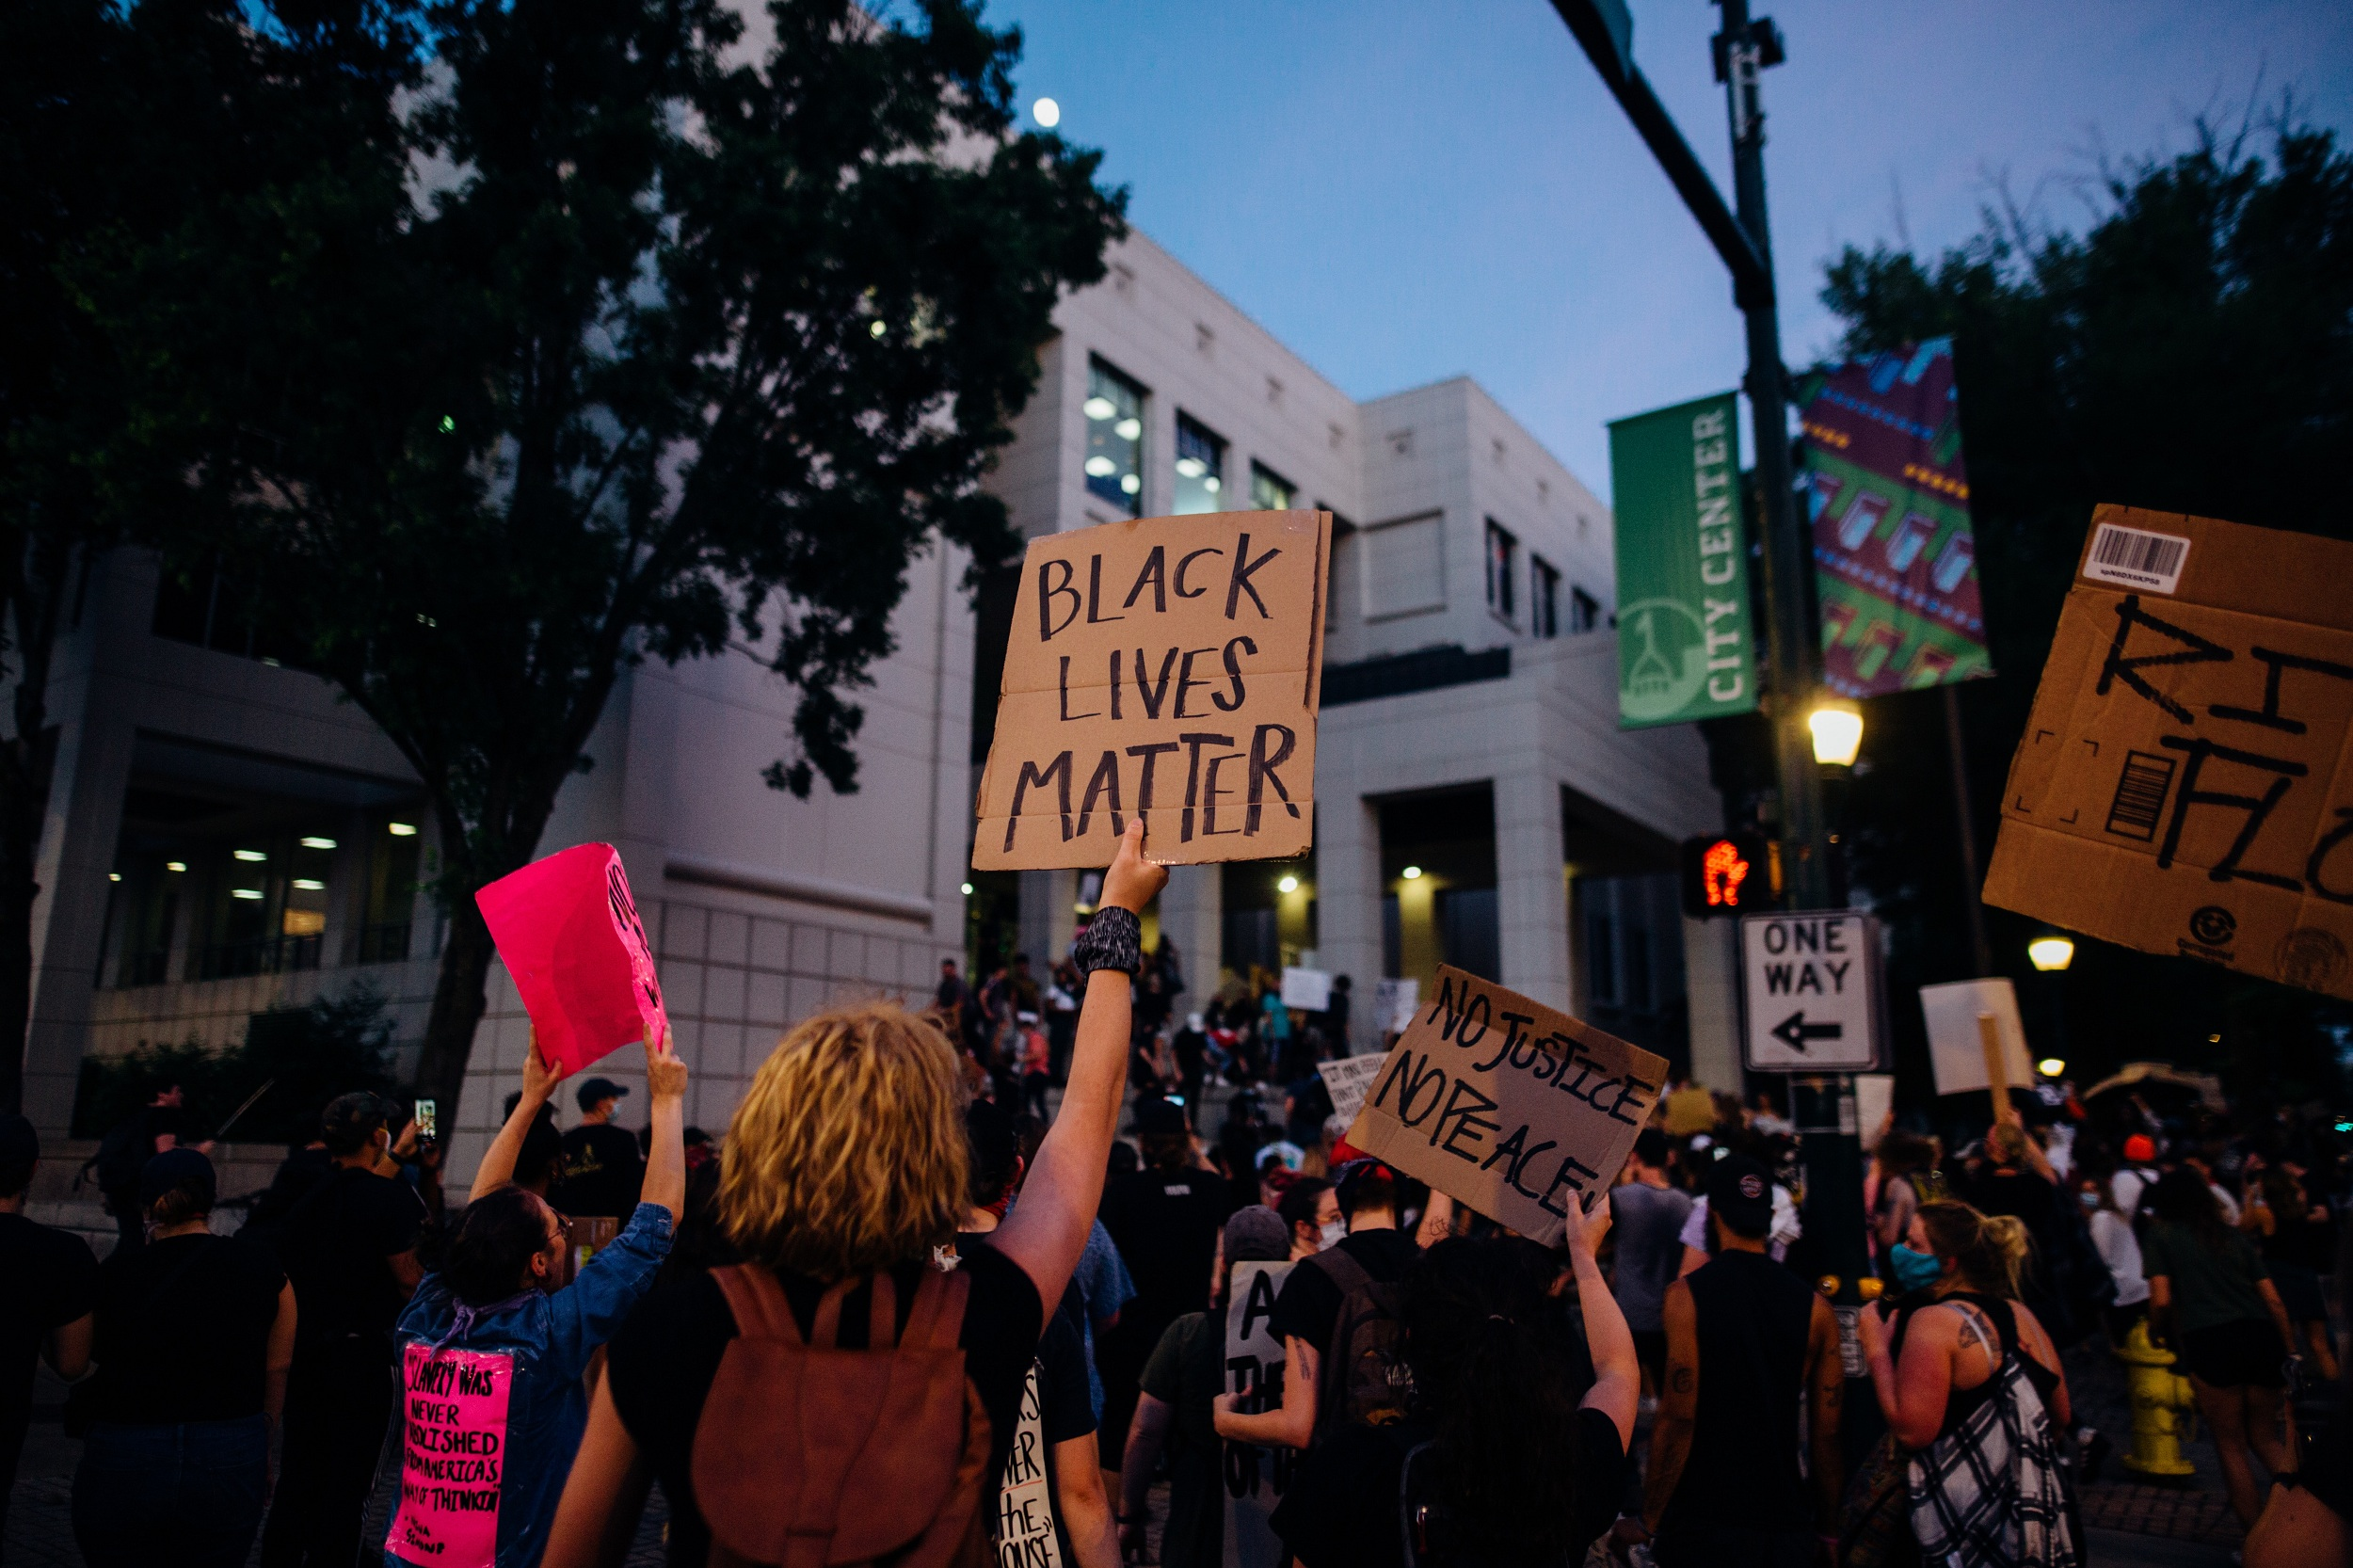 black lives matter background